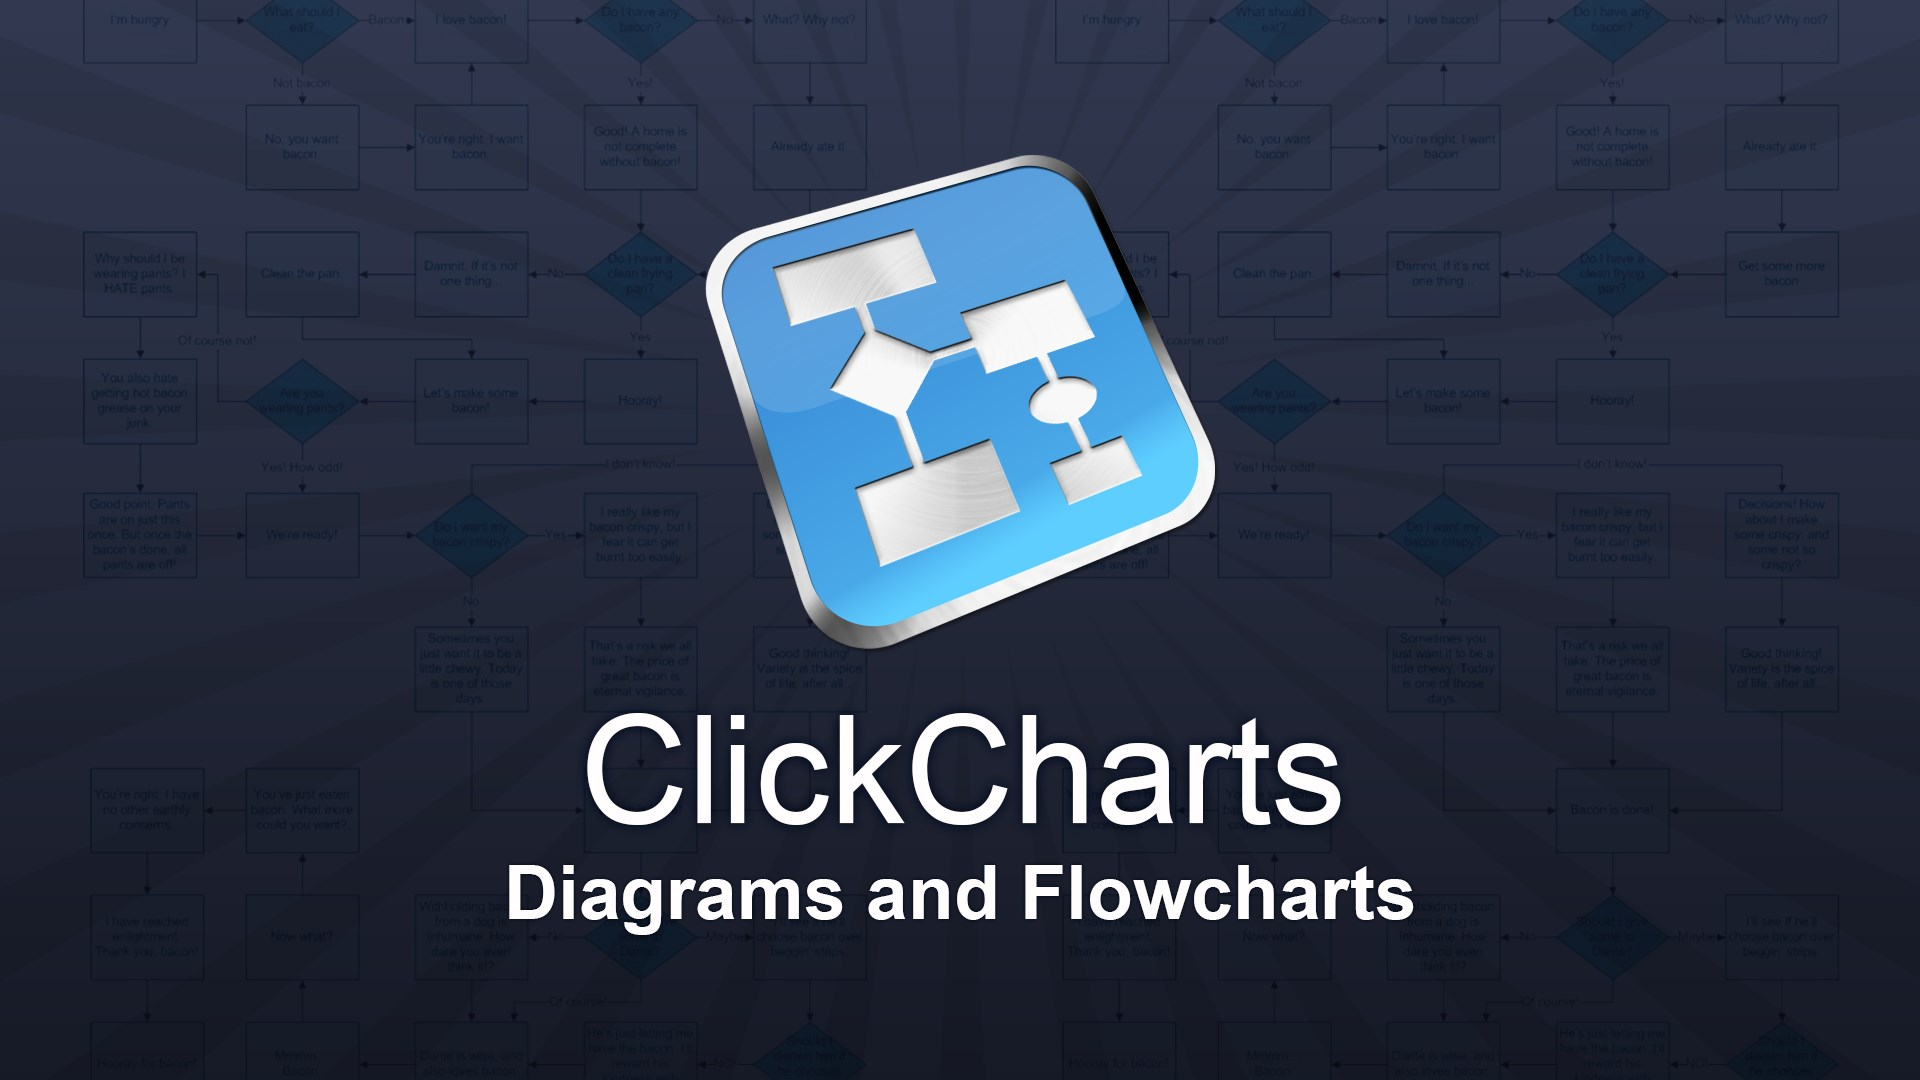 Get ClickCharts Diagram and Flowchart Software Free - Microsoft Store